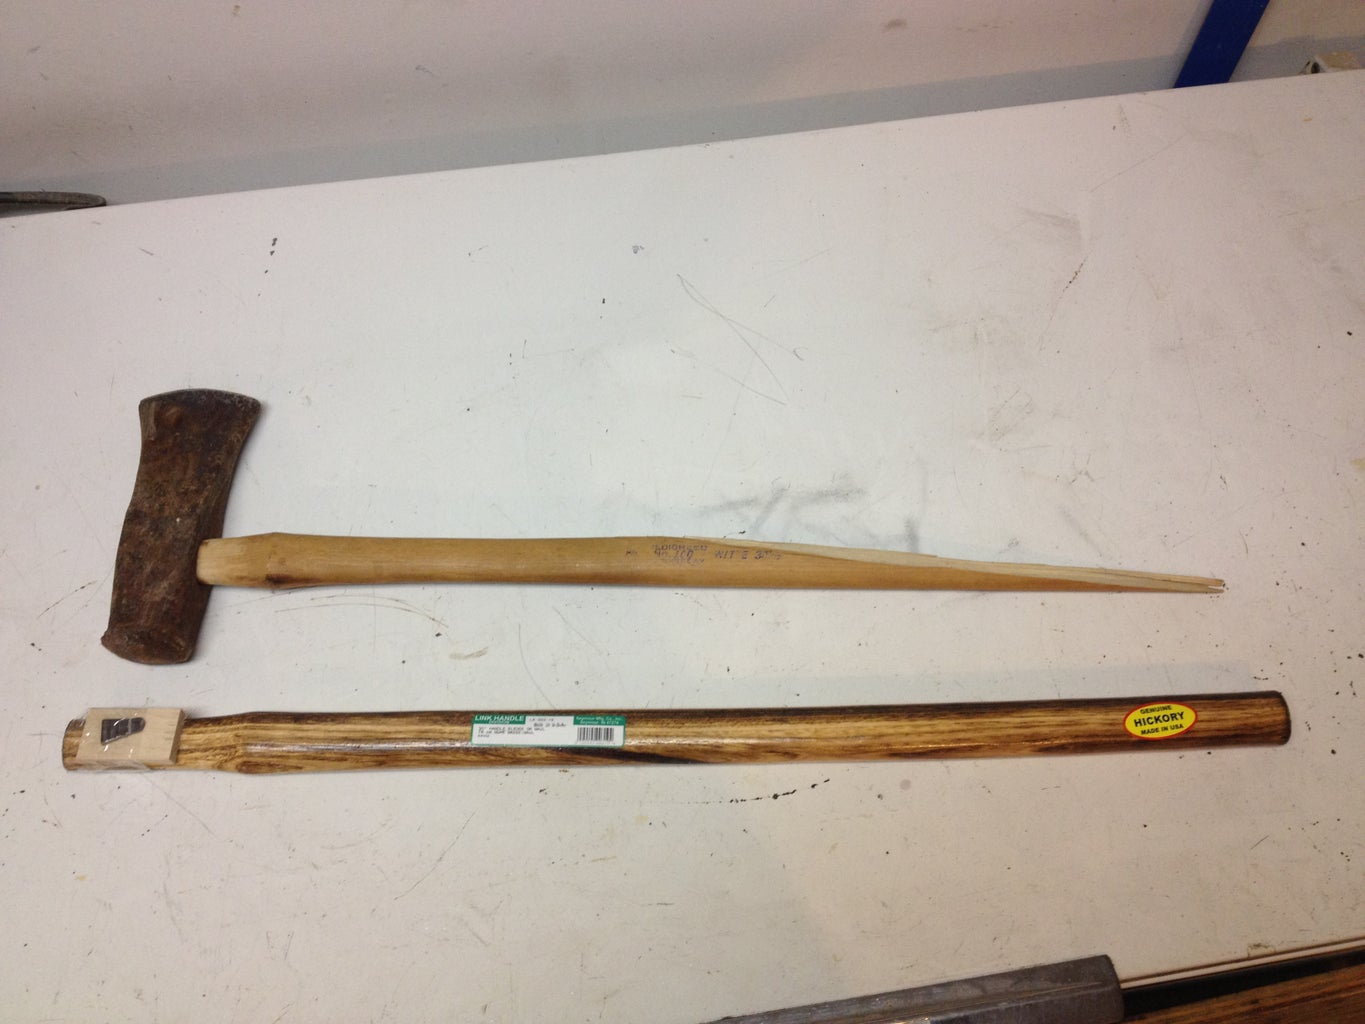 How to Re-handle an Axe...